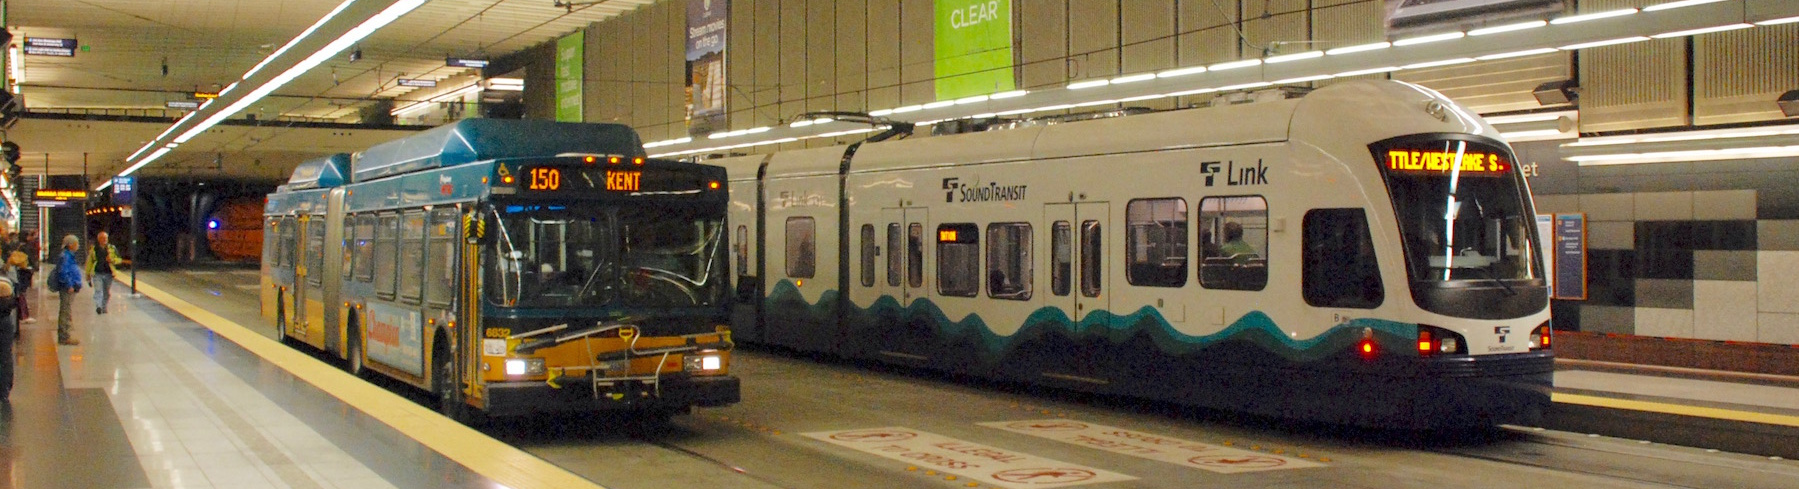 King-County-Metro-Bus-and-Link-Light-Rail-Steve-Wilson-Wikimedia